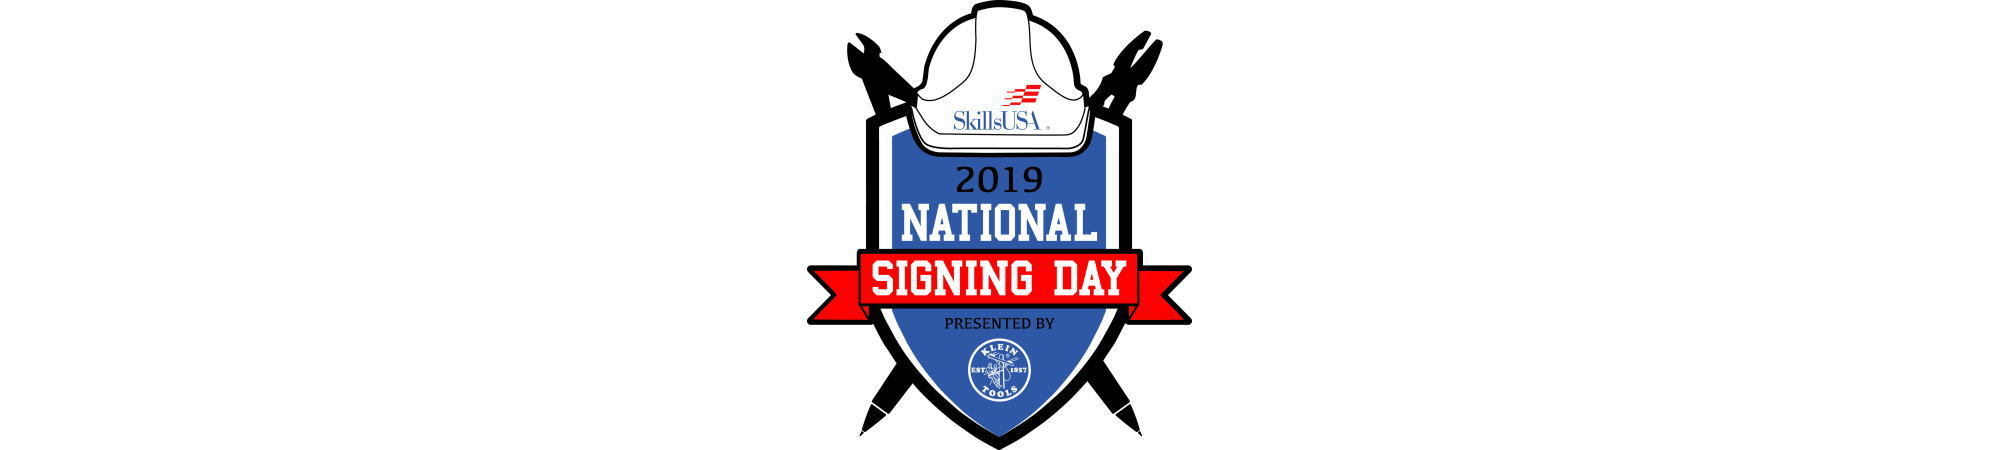 2019 National Signing Day Presented by Klein Tools